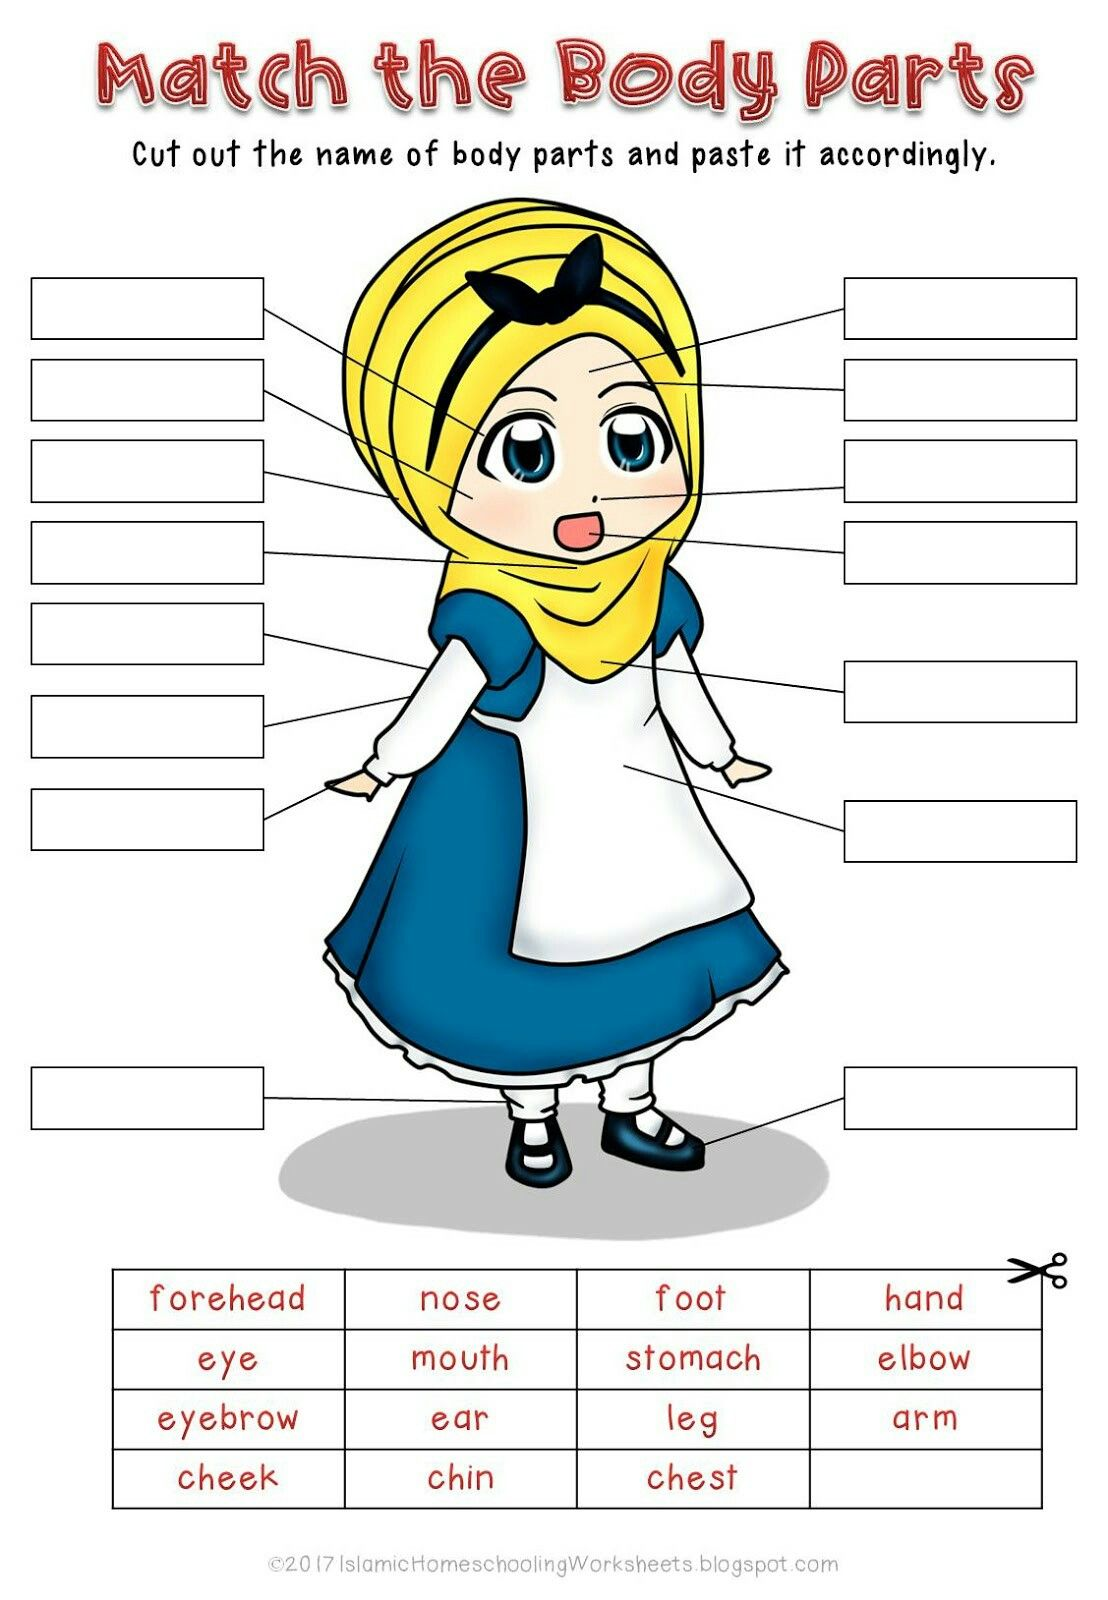 Pin On Islamic Homeschooling Worksheets